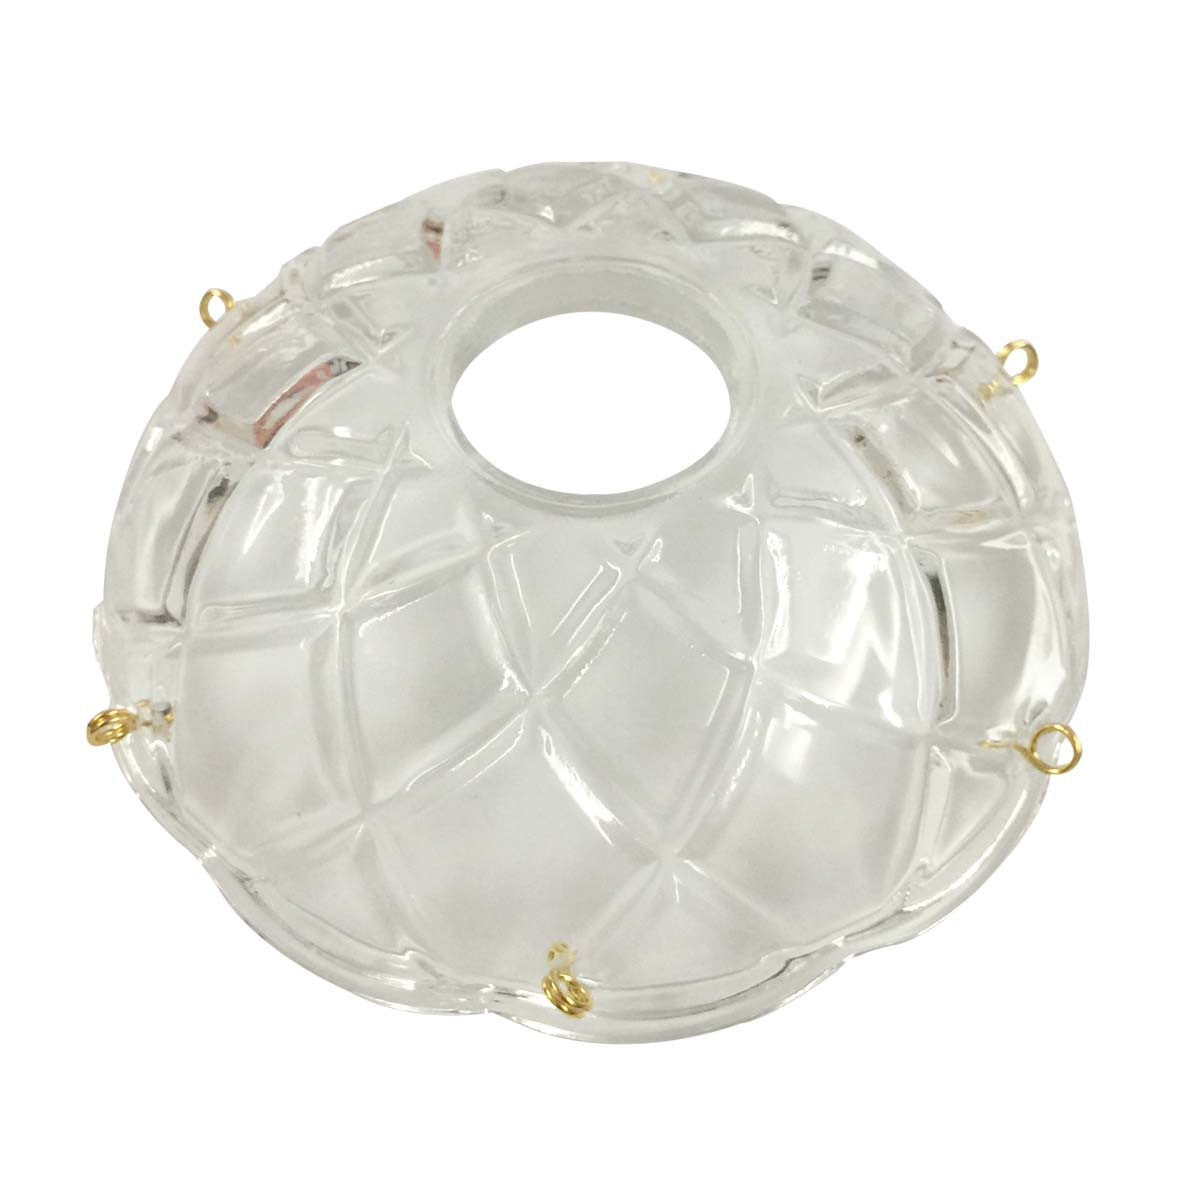 Vintage Bobeche Clear Glass 6 Prism Hole Scallop 4 D Bobeches Glass Bobeche Crystal Bobeche